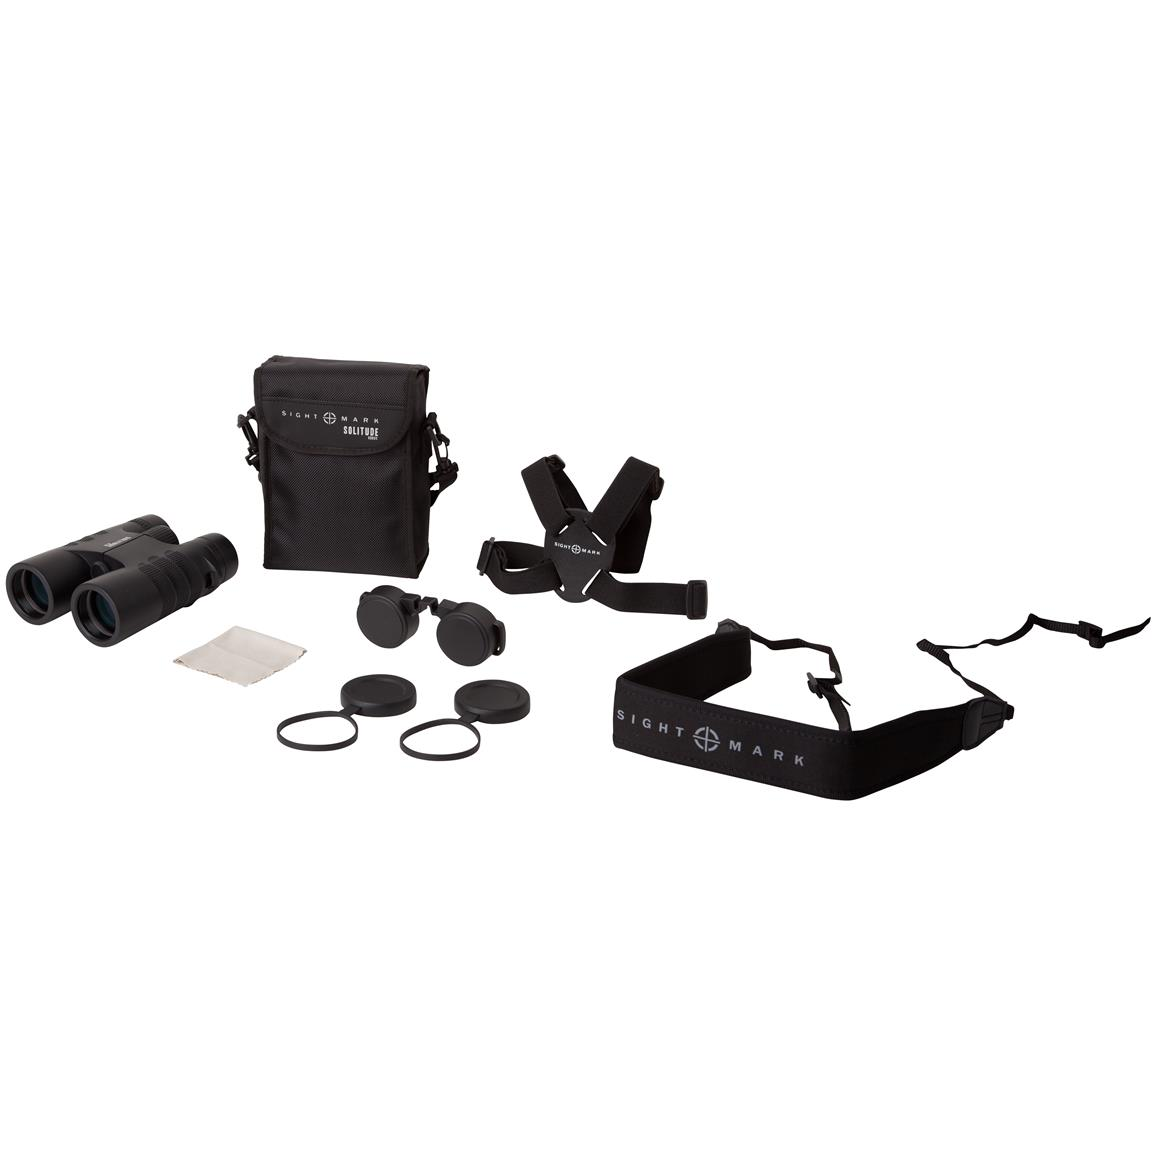 Includes nylon carry case, neck strap, lens cover, and shoulder harness